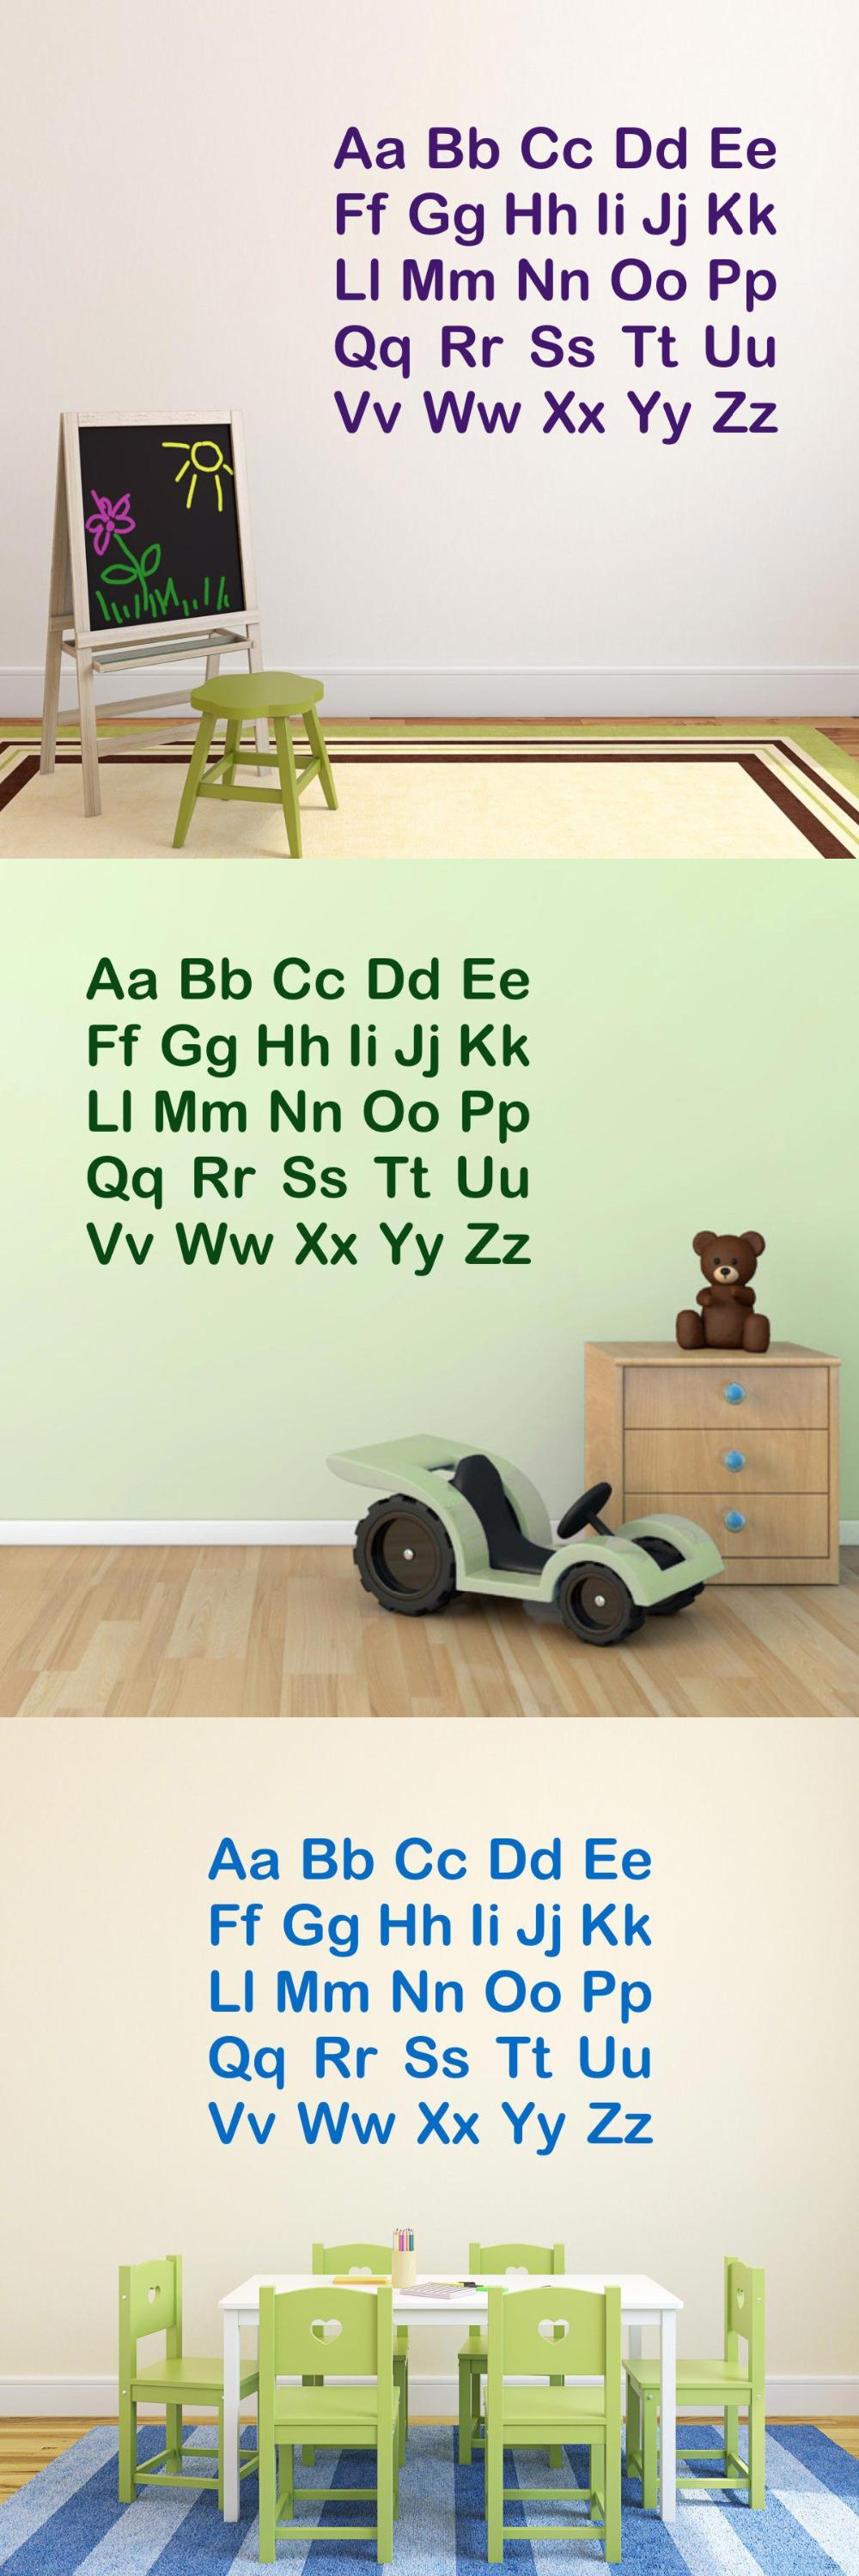 Buy Letters For Wall Visit To Buy Alphabet Letters Wall Stickers For Kids Room Nurdery